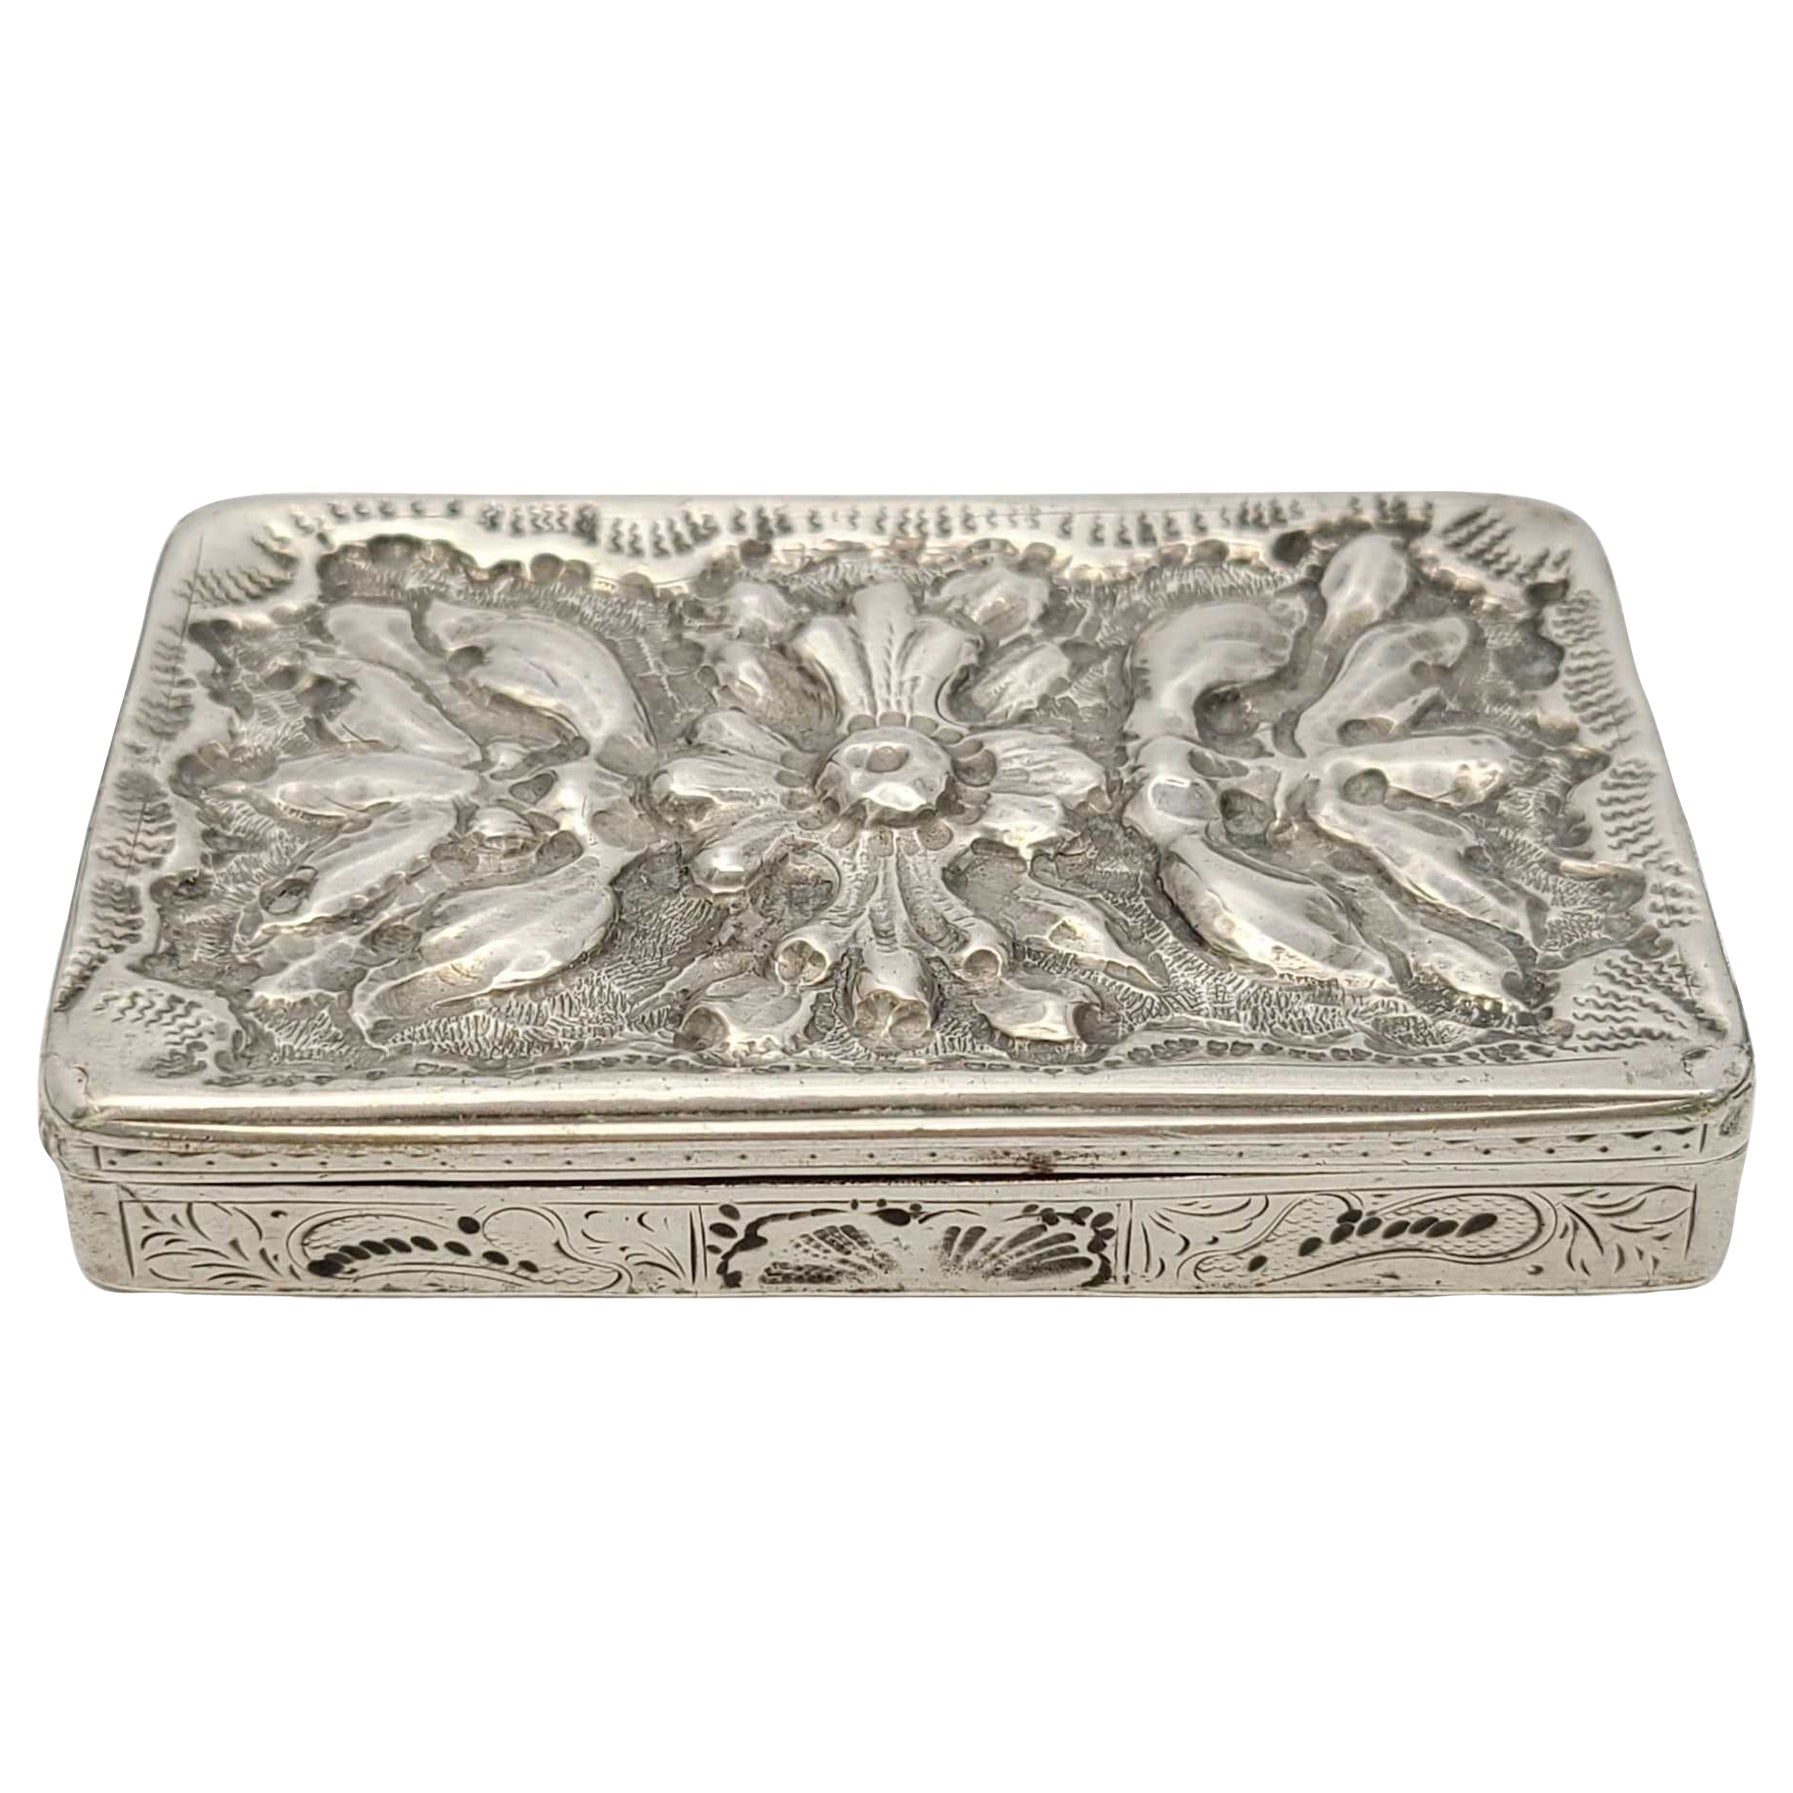 Antique Sterling Silver Repousse Box